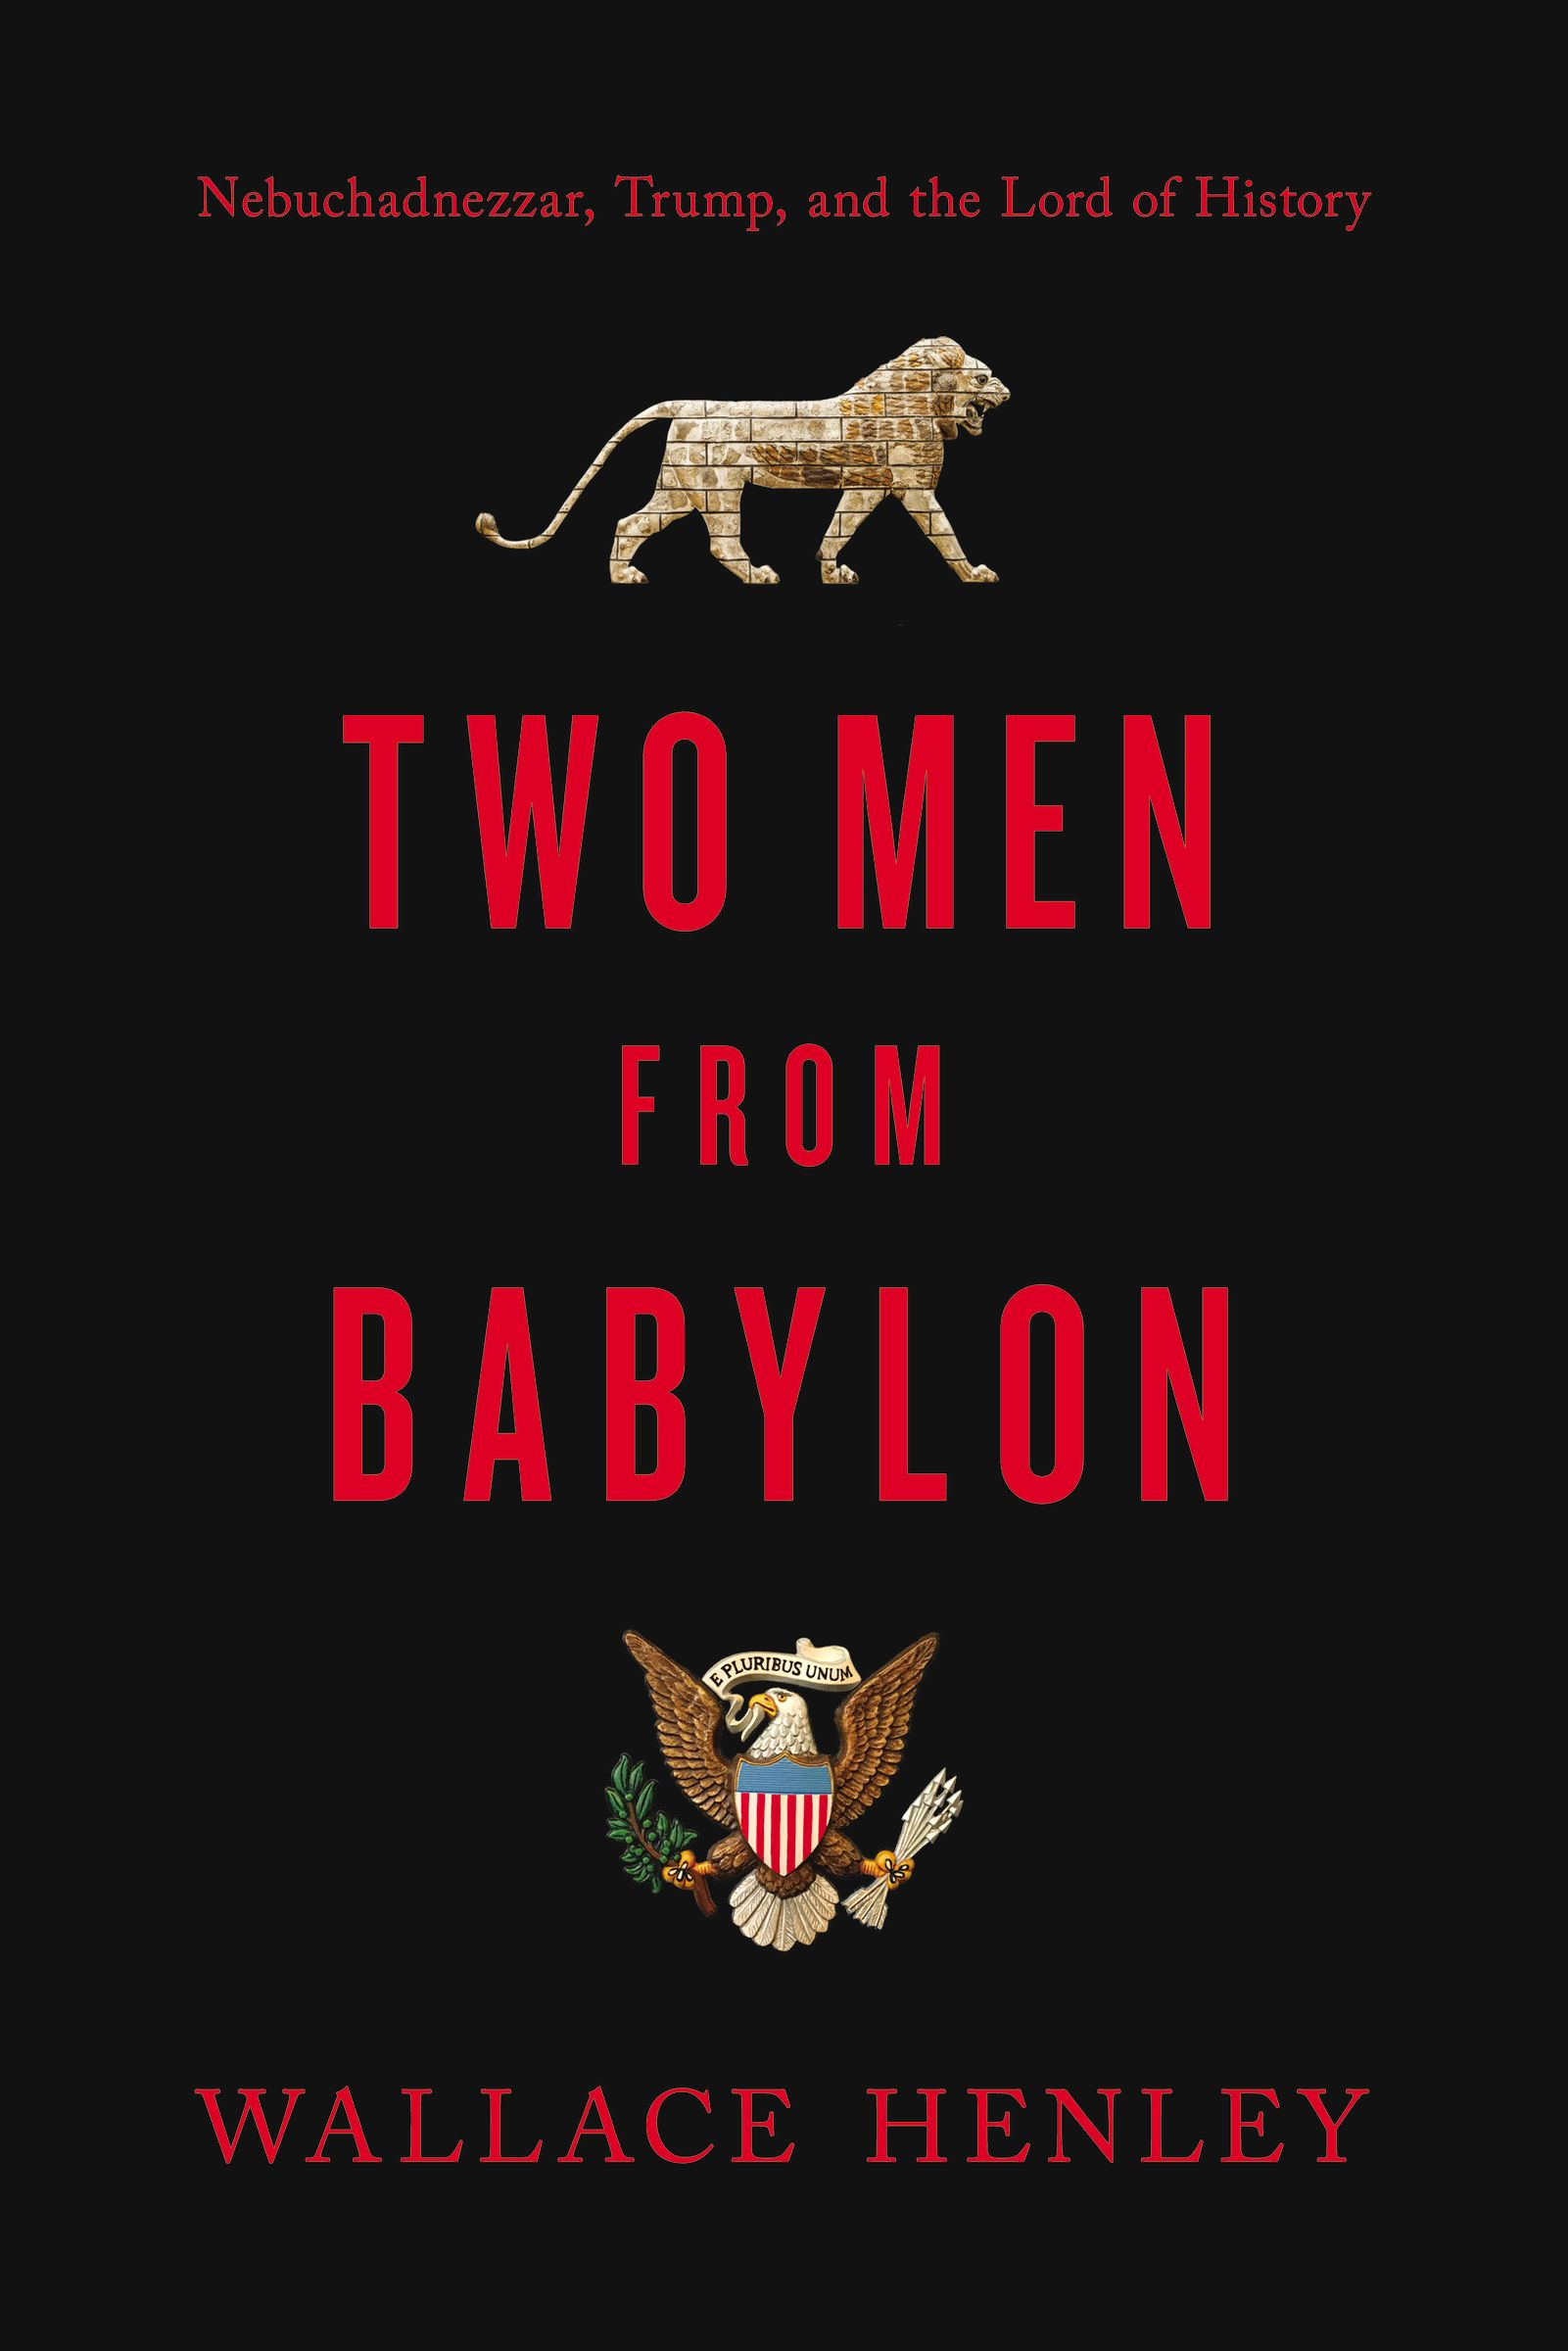 Two Men from Babylon: Nebuchadnezzar, Trump, and the Lord of History